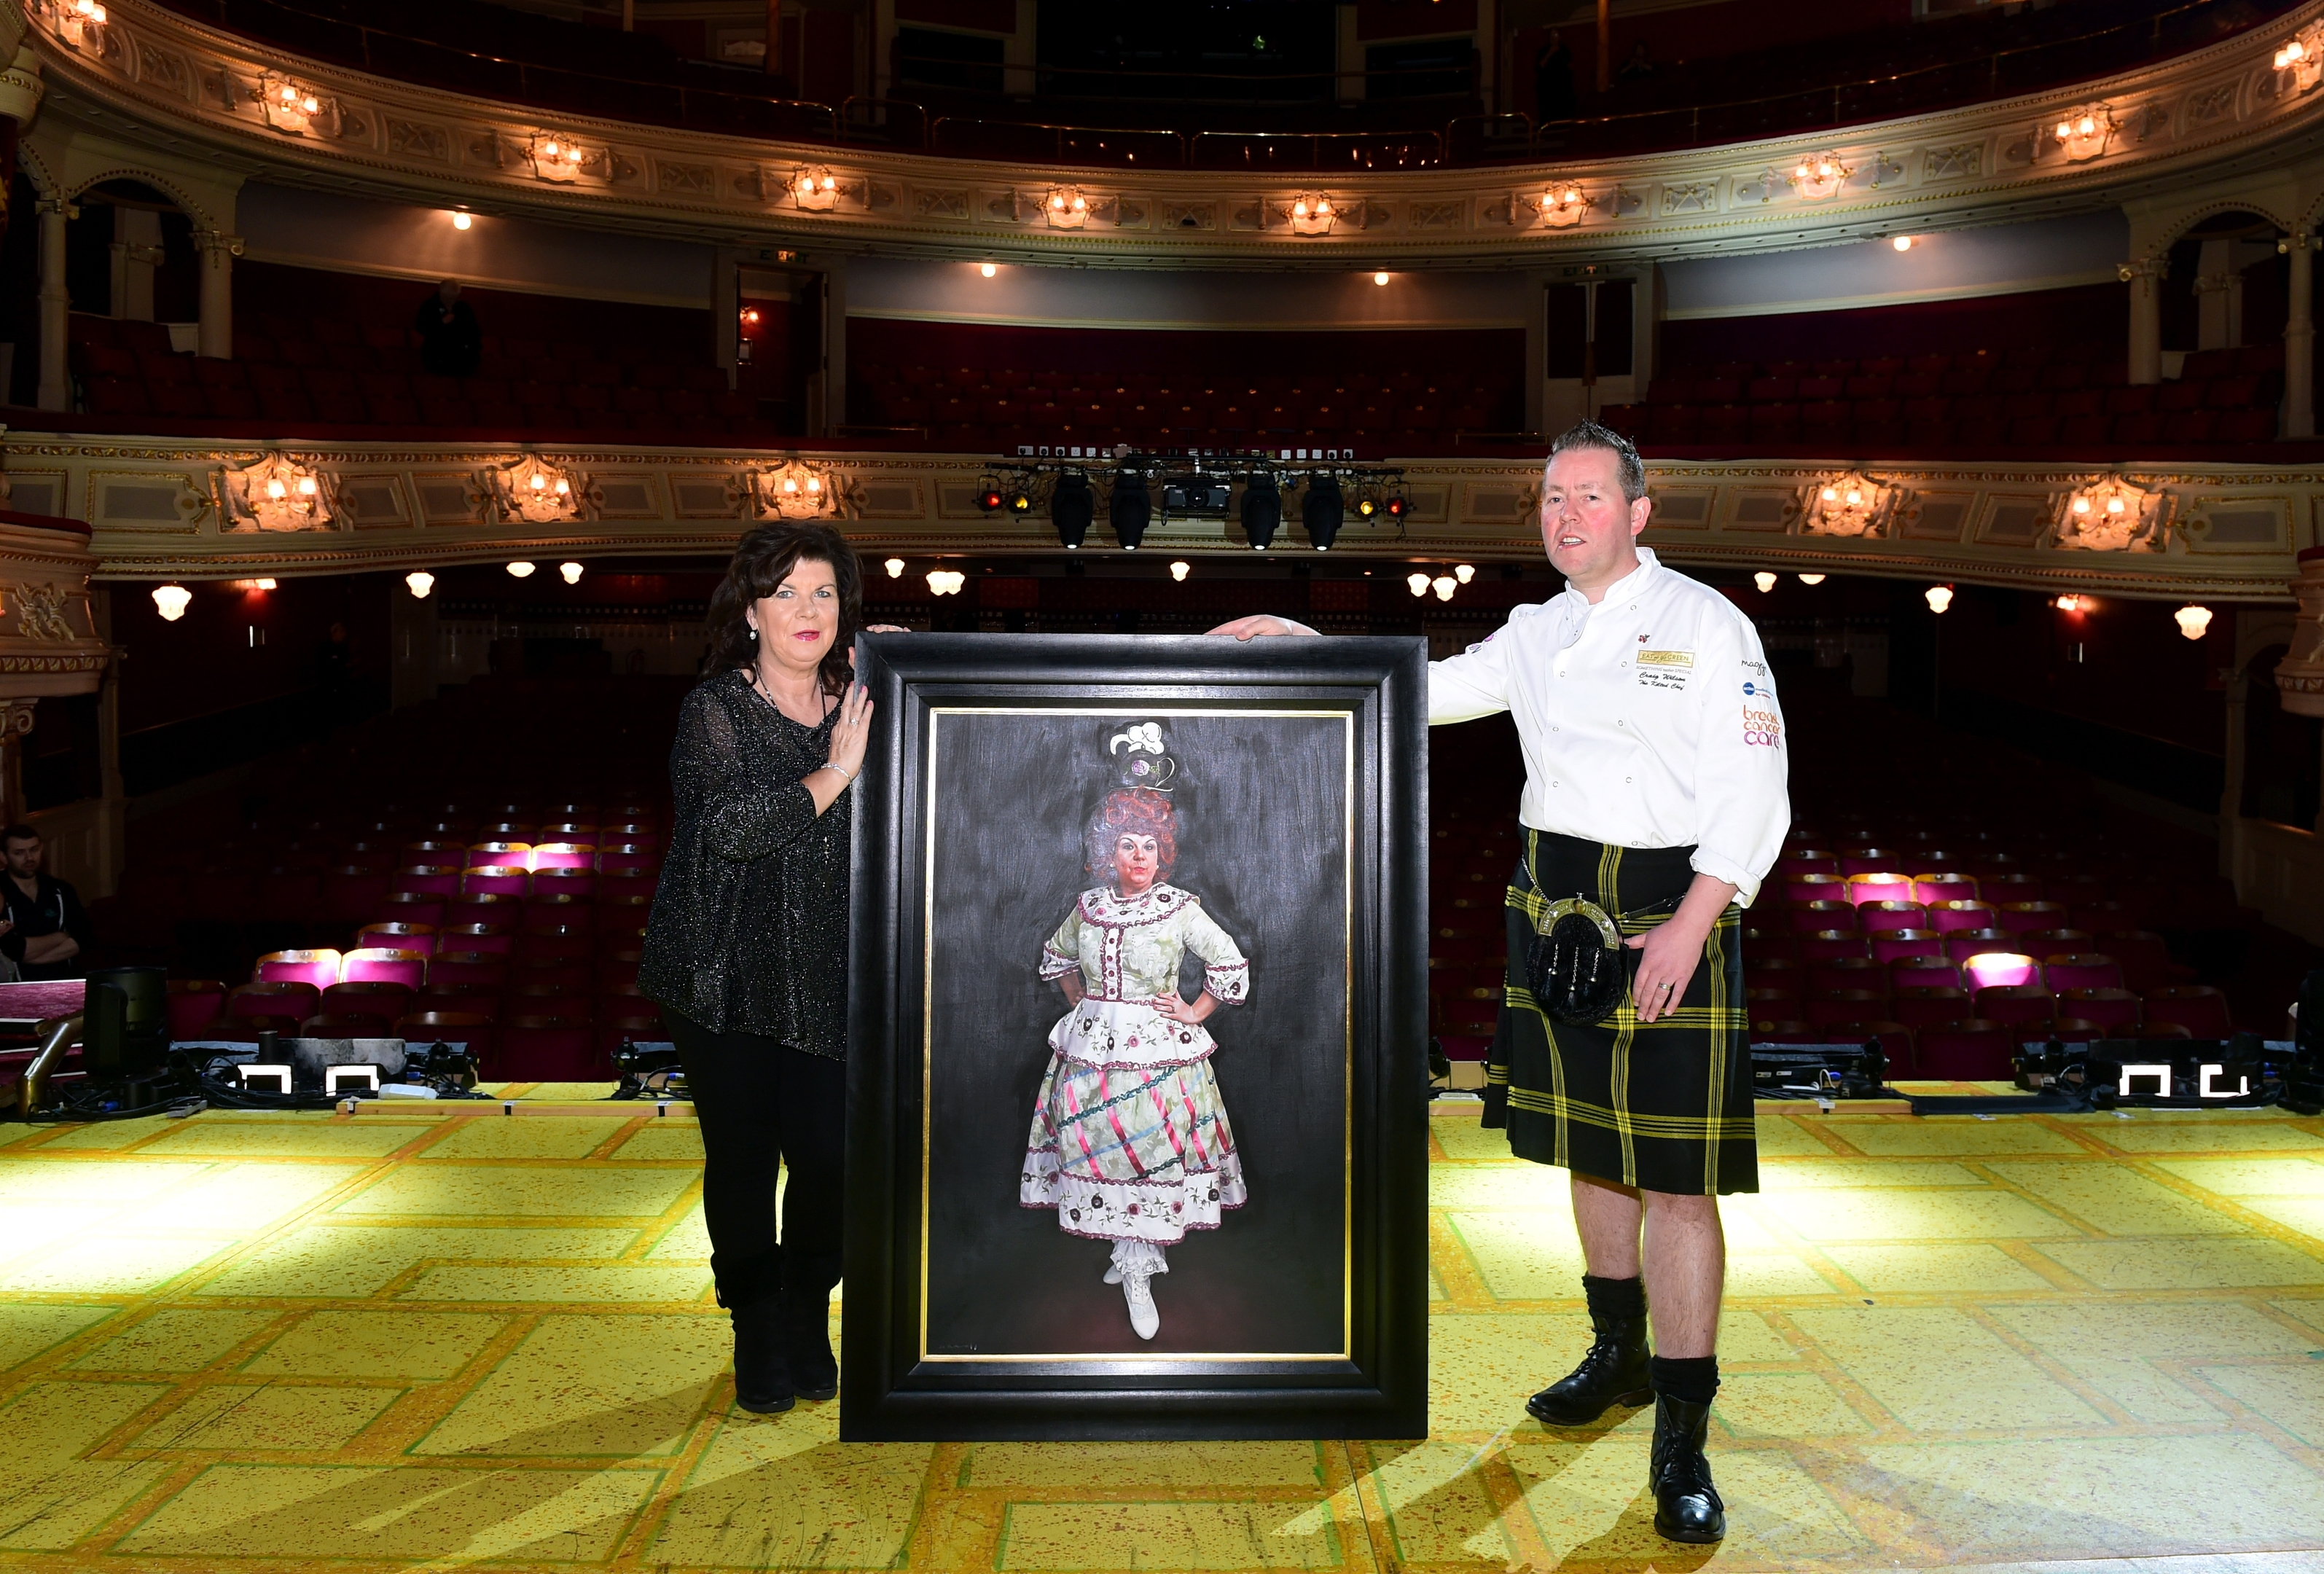 Elaine C Smith at HMT with the kilted chef, Craig Wilson and her portrait.